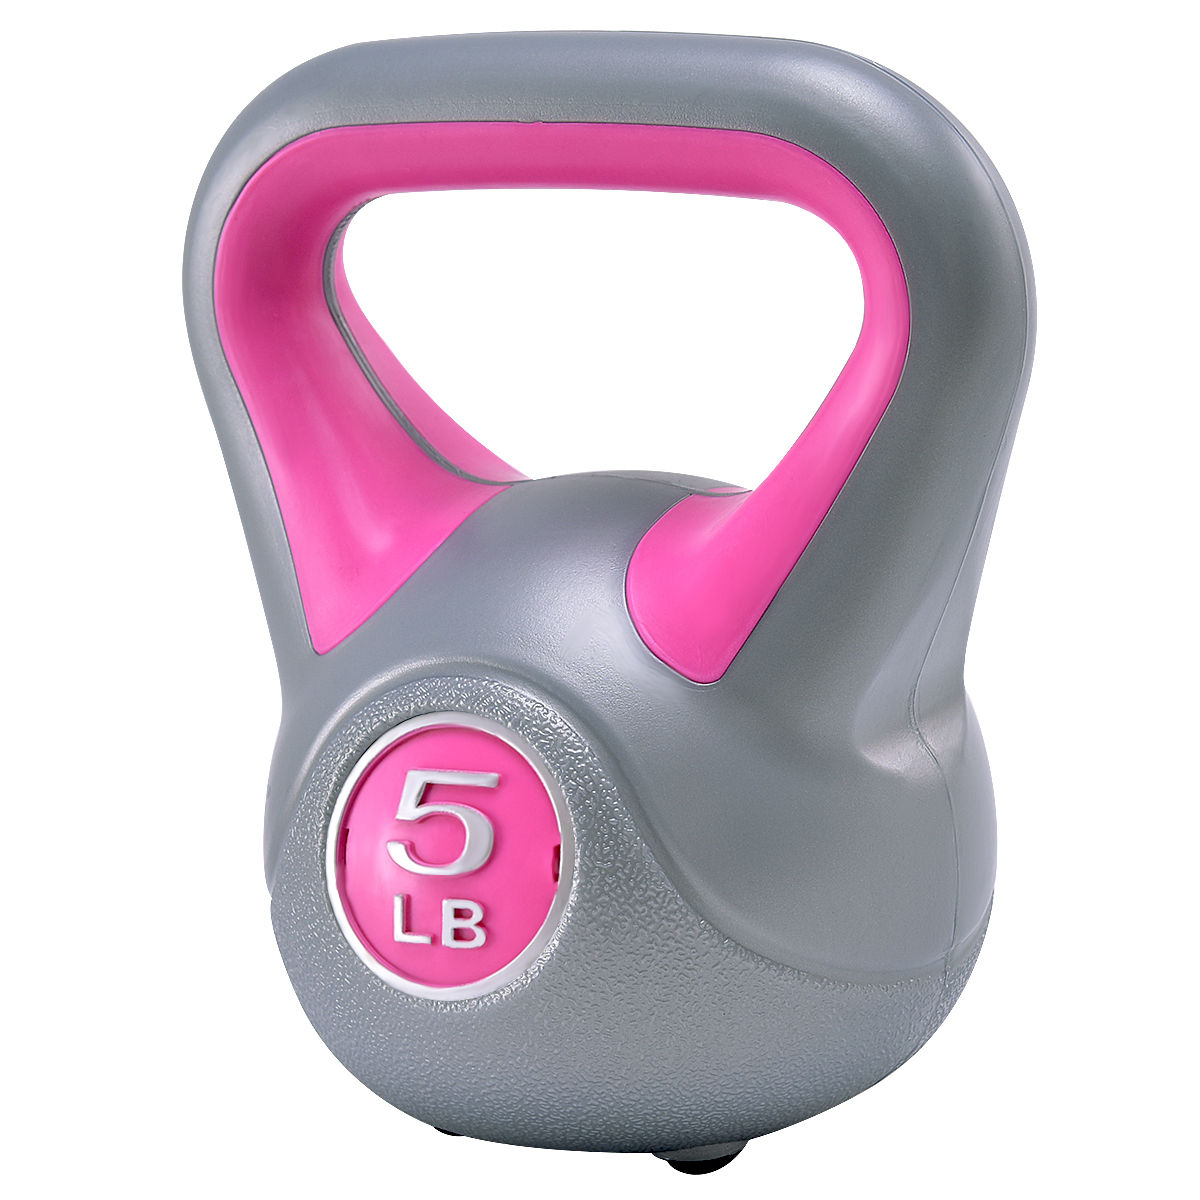 Kettlebell Exercise Fitness Body 5-45lbs Weight Loss Strength Training Workout